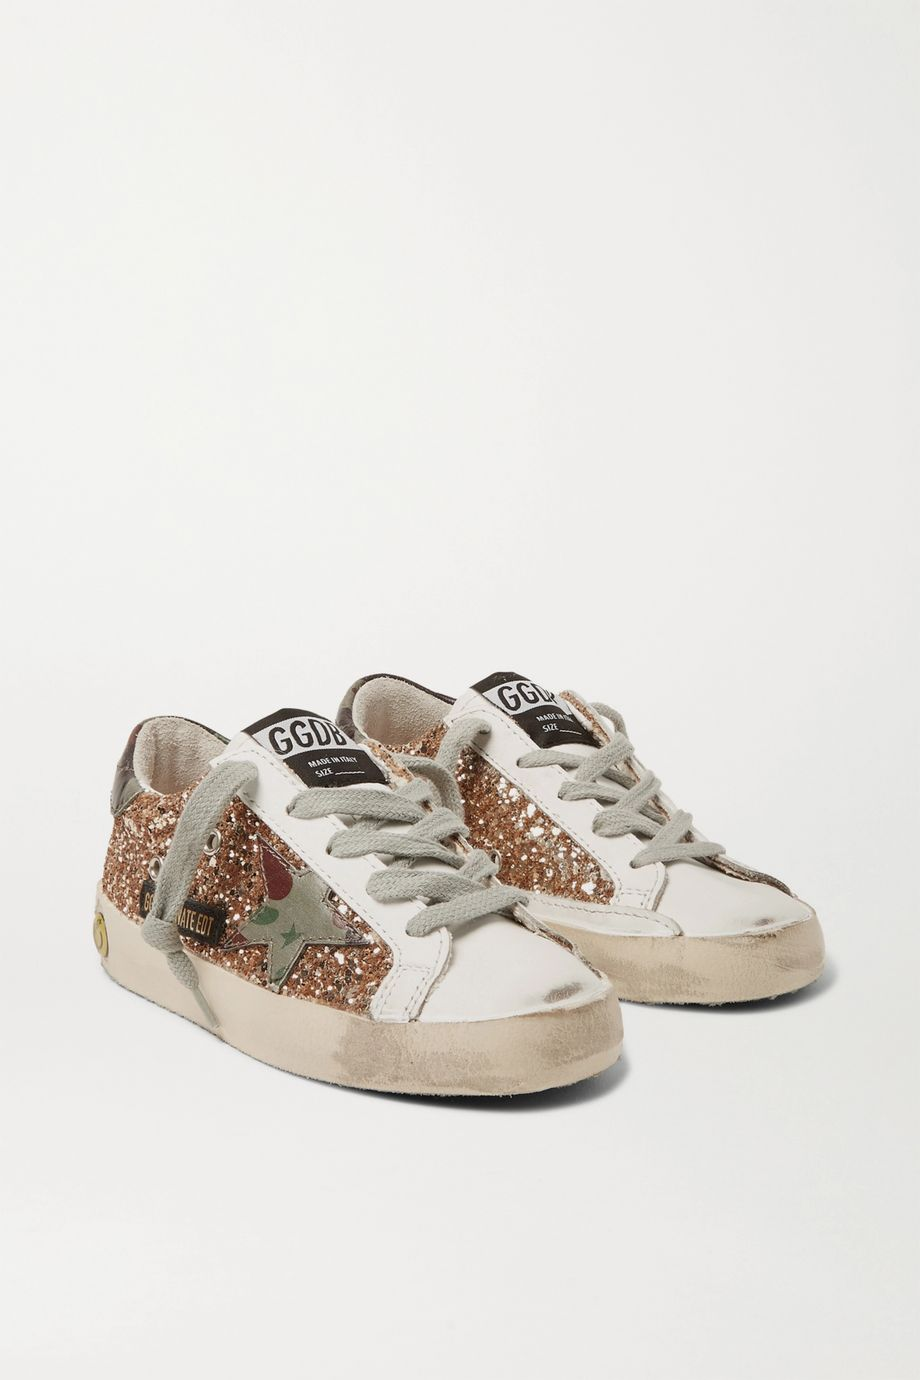 Golden Goose Kids Sizes 28 - 35 Superstar glittered distressed leather sneakers